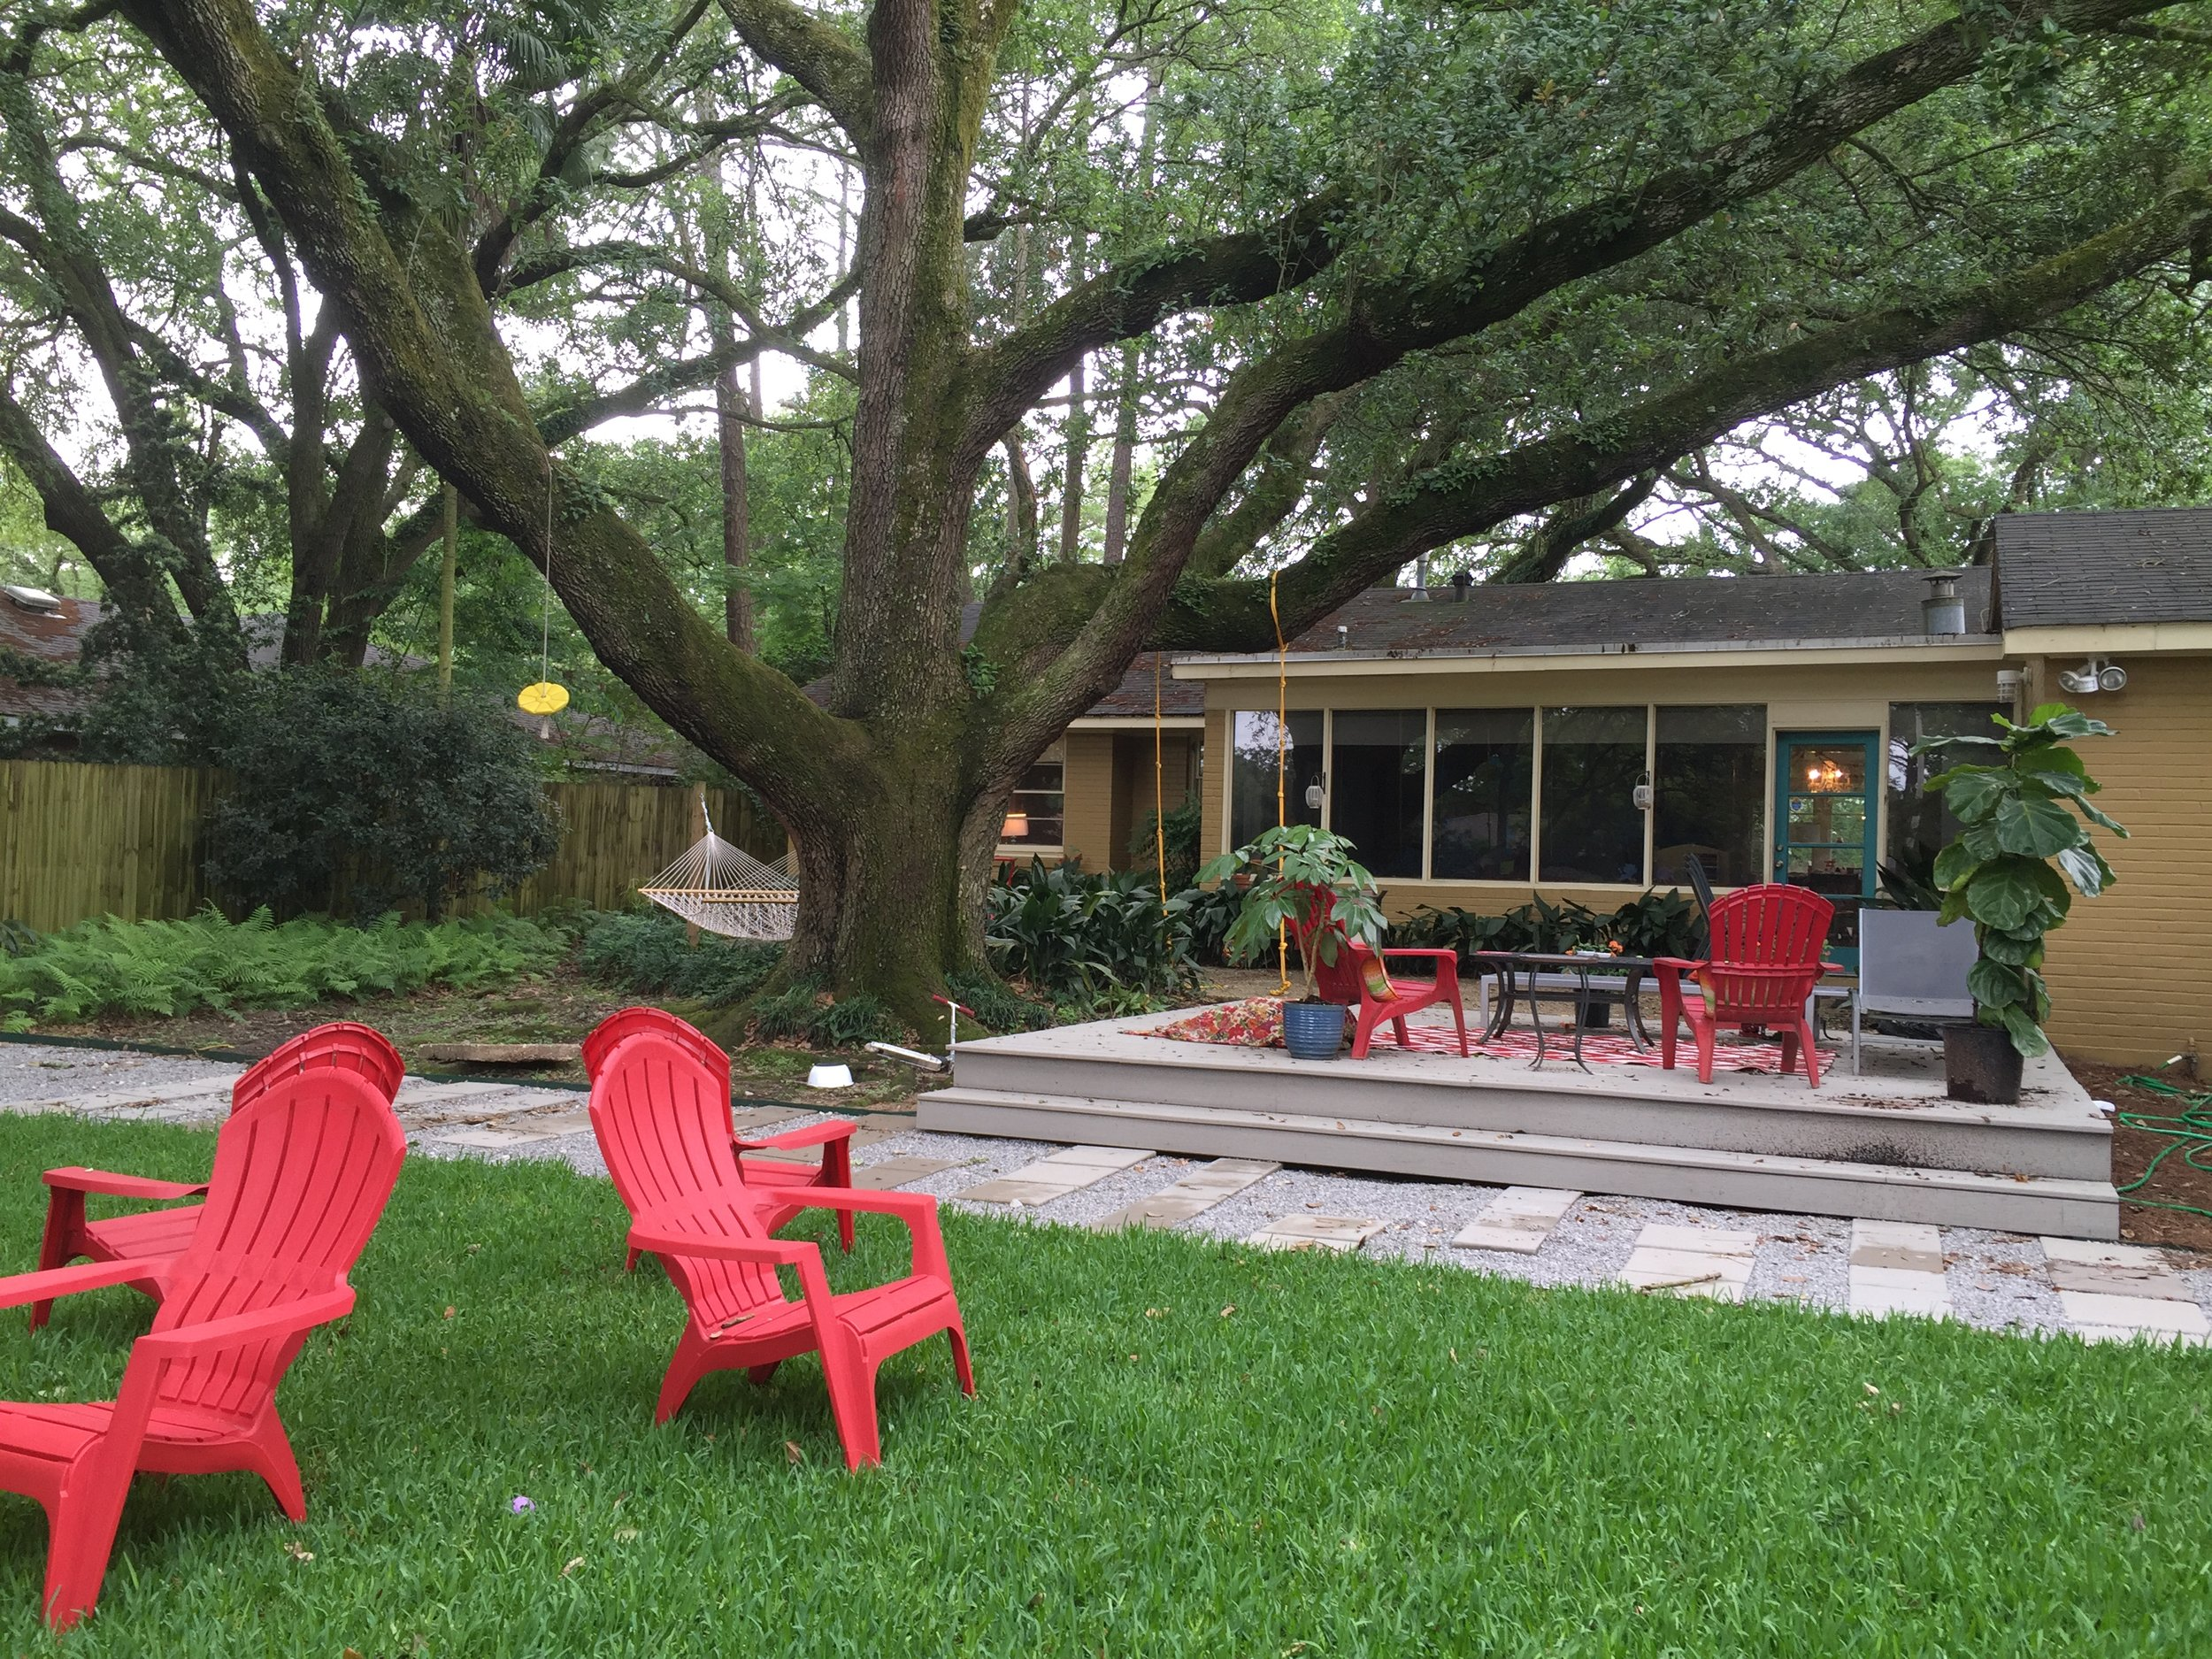 the back yard showcases the large oak tree and plenty of seating areas for the family.